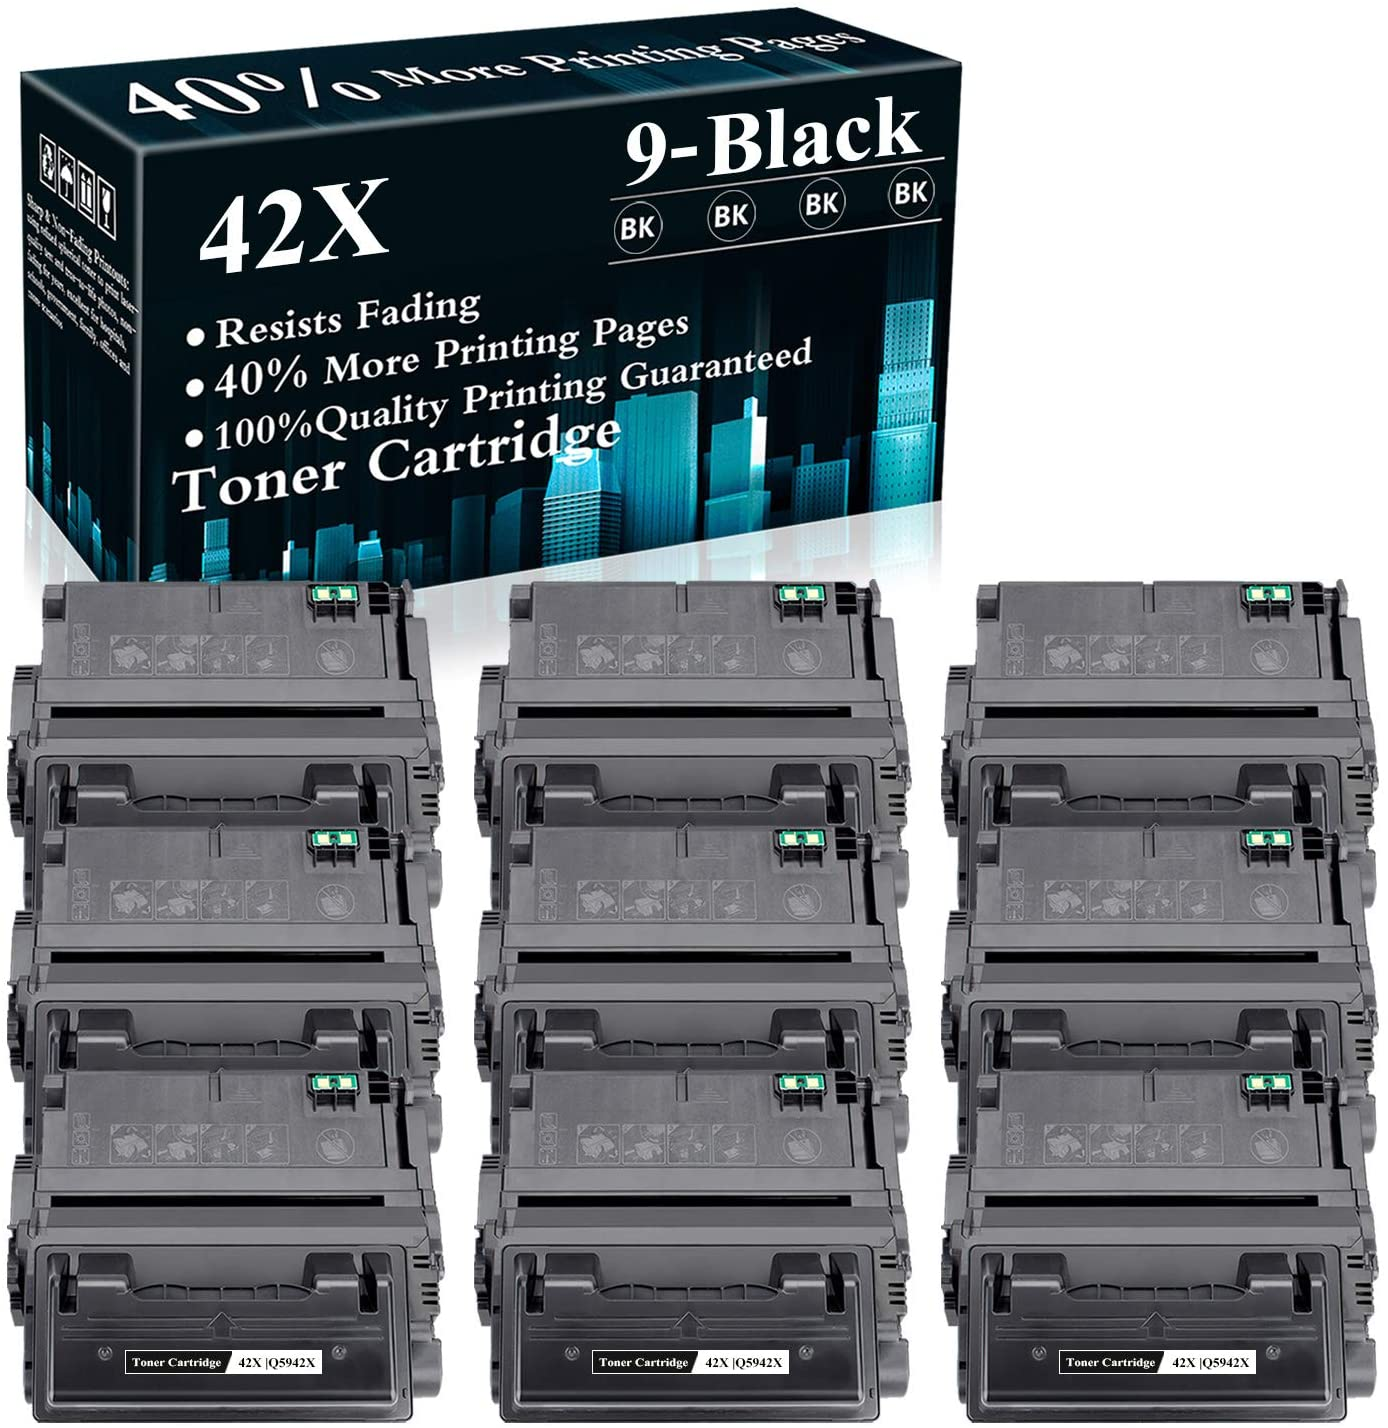 9 Pack 42X   Q5942X Black Compatible Toner Cartridge Replacement for HP Laserjet 4200 4200N 4200dtn 4250 4250n 4250dtnsl 4300n 4300dtns 4350n 4350tn 4350dtn M4345xs M4345xm MFP Printer,Sold by TopInk